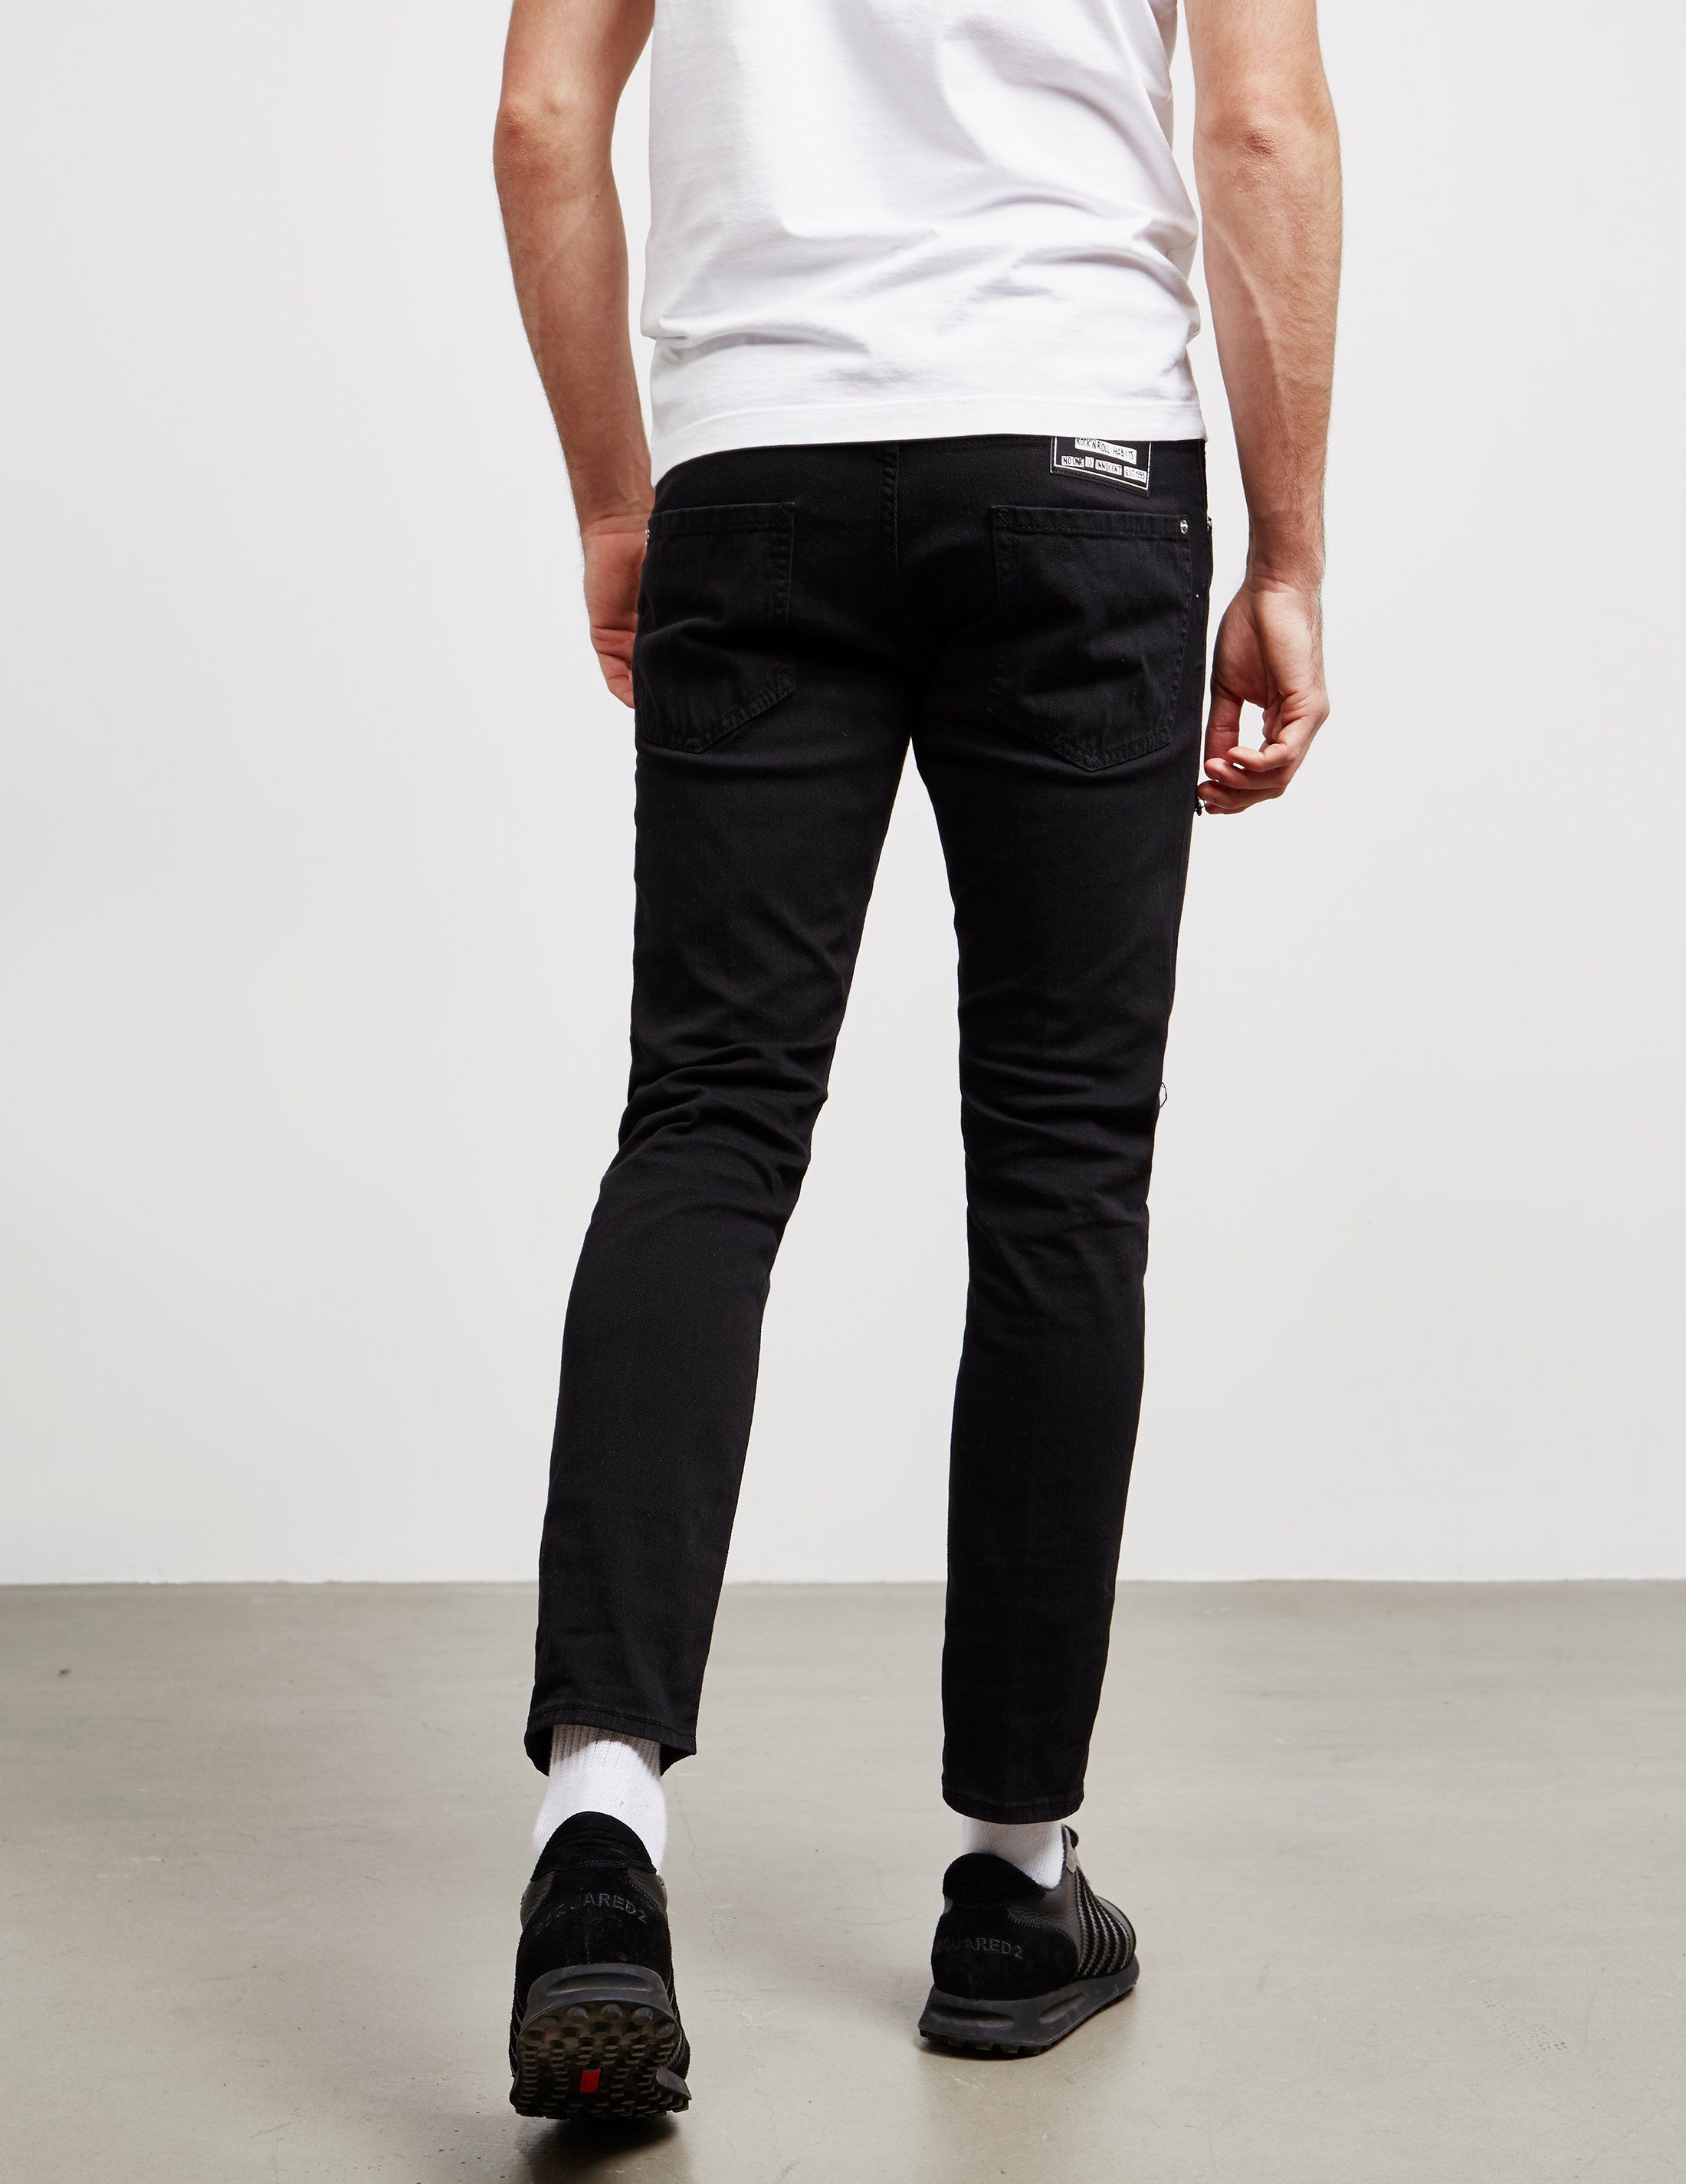 Dsquared2 Skater Ring Jeans - Online Exclusive